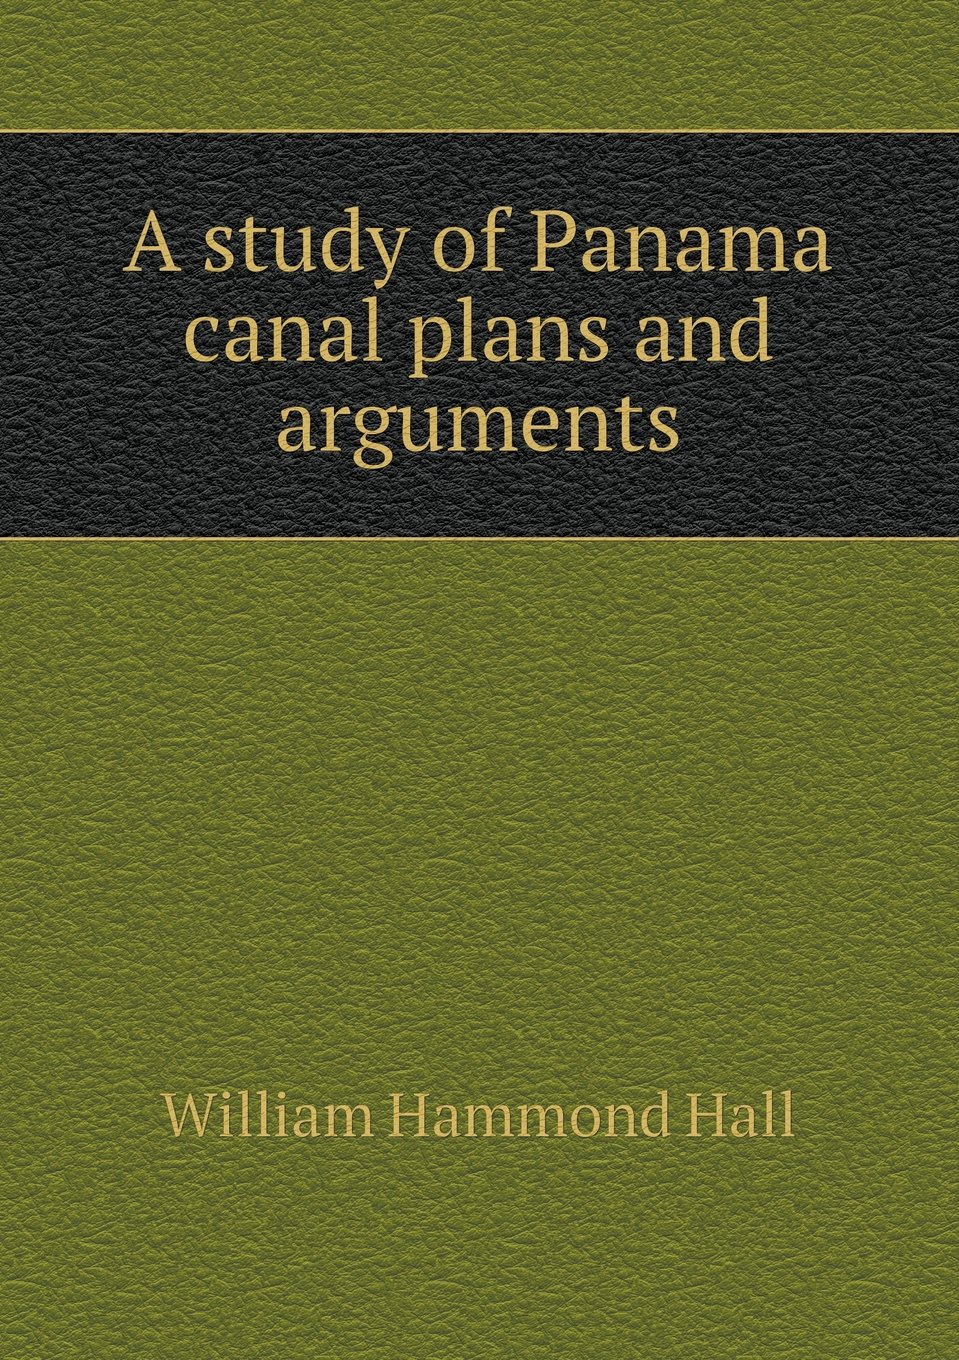 Download A study of Panama canal plans and arguments pdf epub